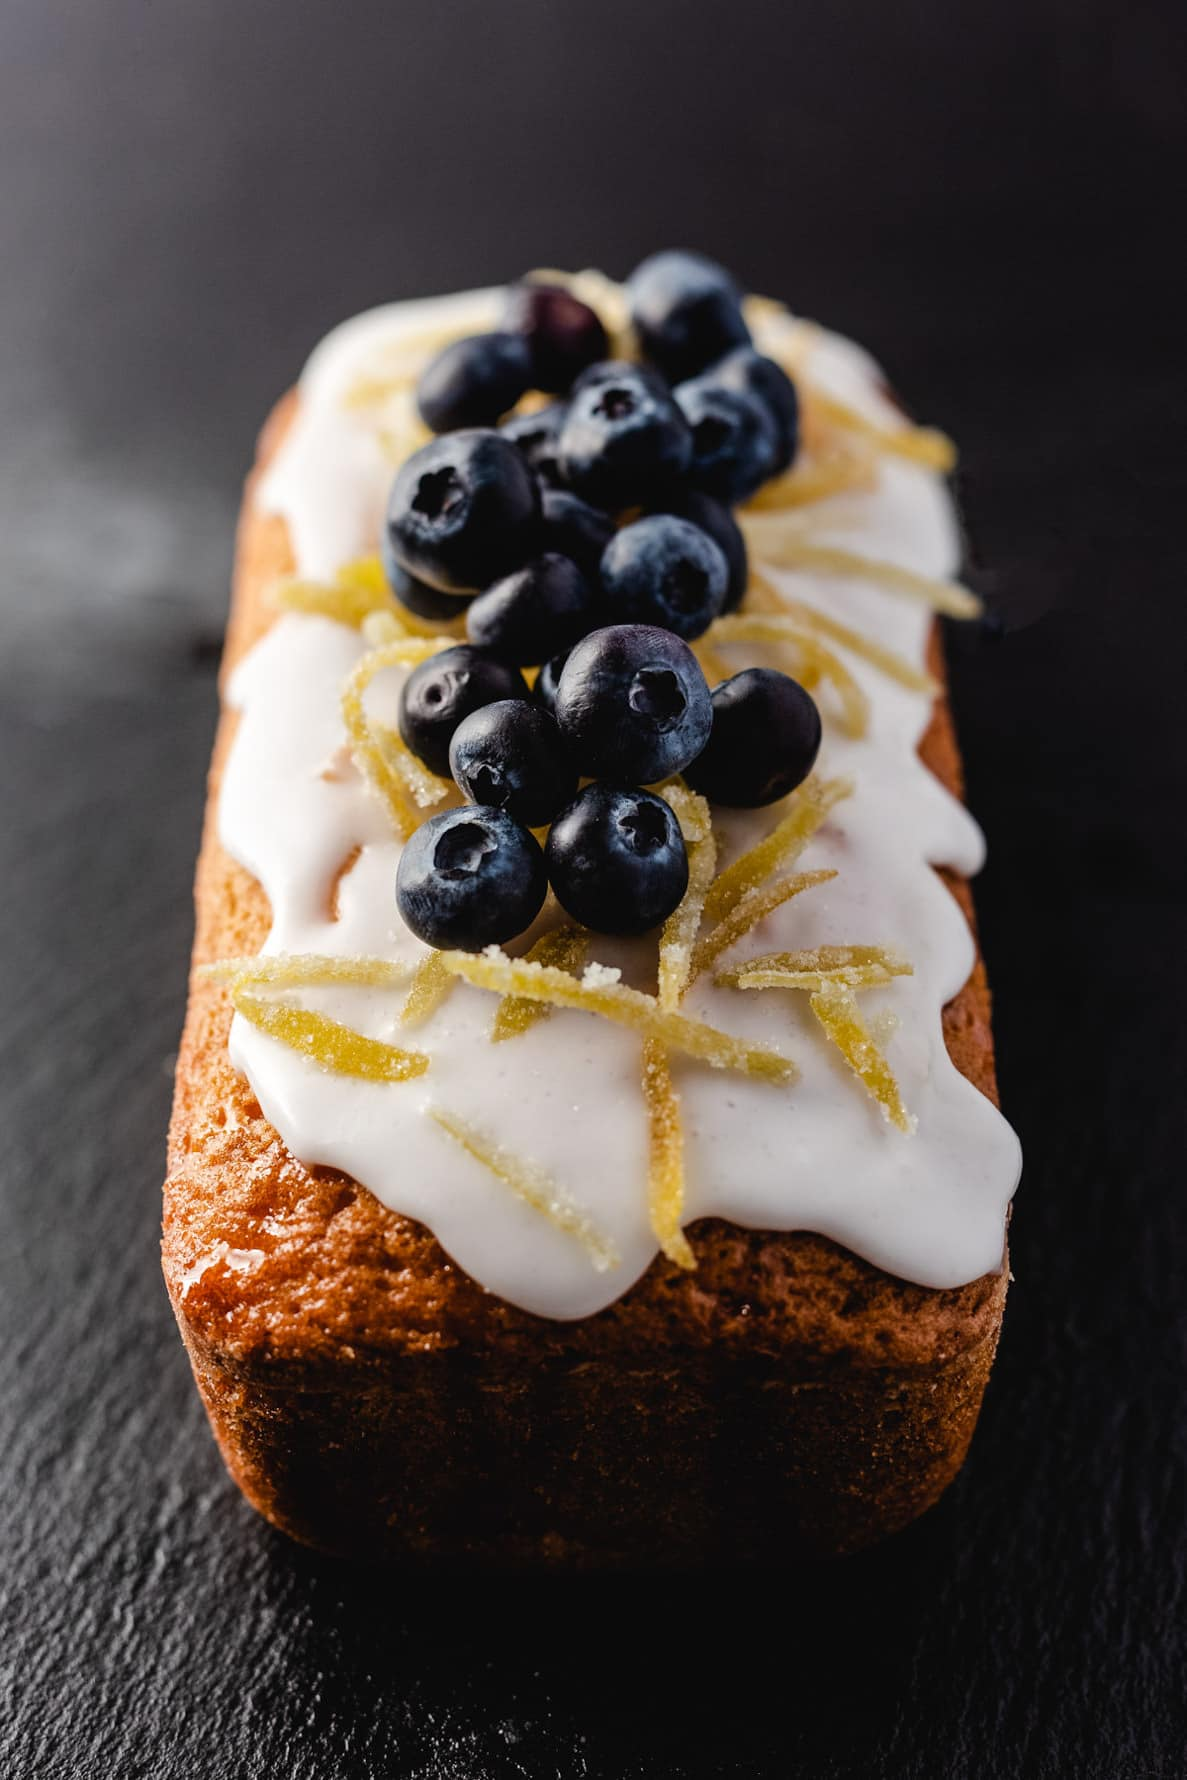 lemon drizzle cake topped with blueberries